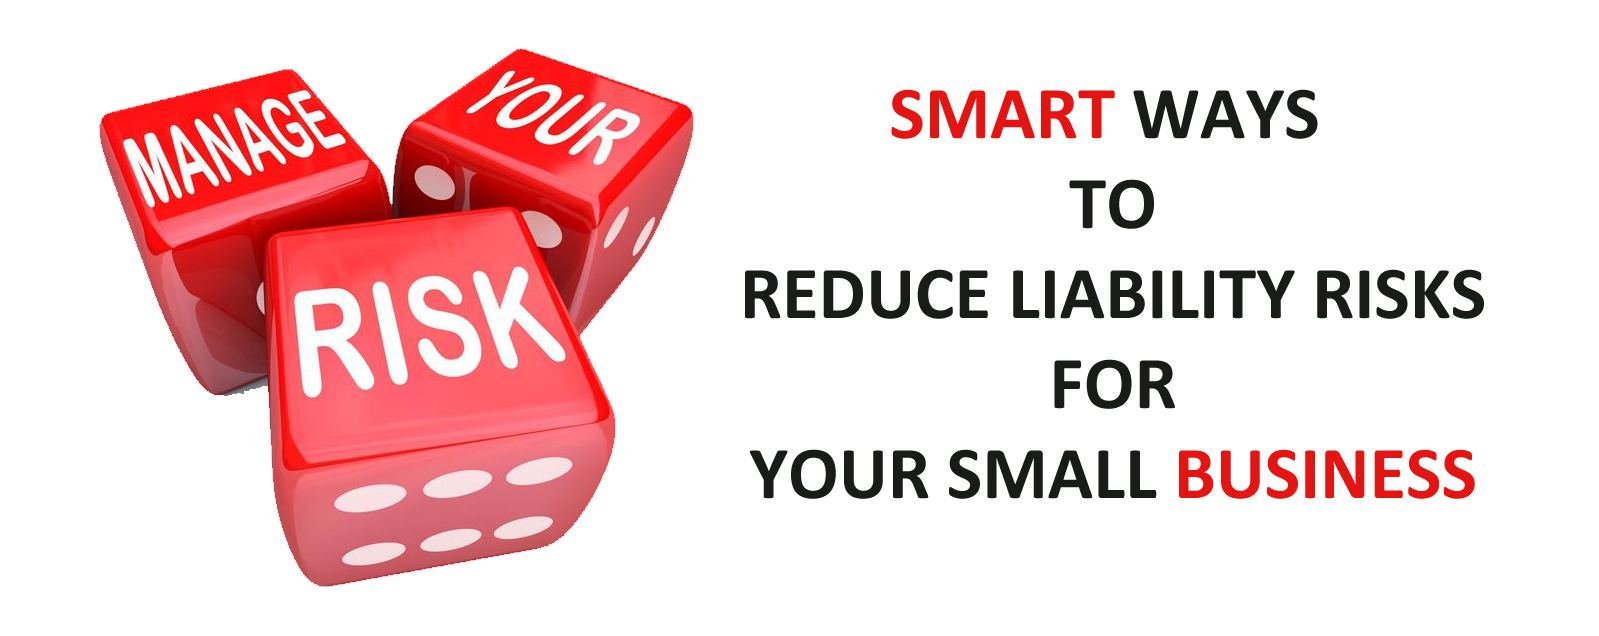 Smart Ways to Reduce Liability Risks for Your Small Business